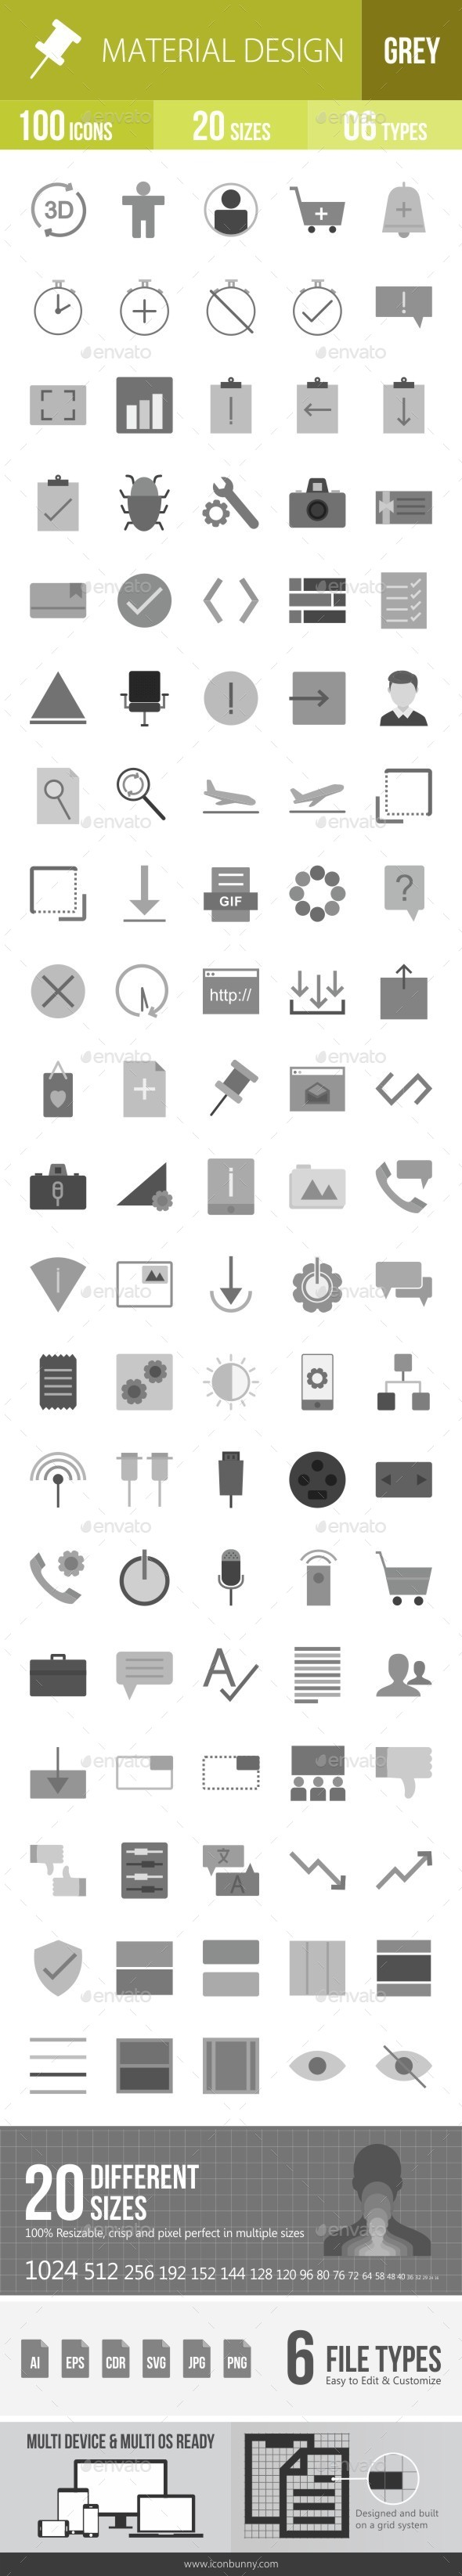 Material Design Greyscale Icons - Icons